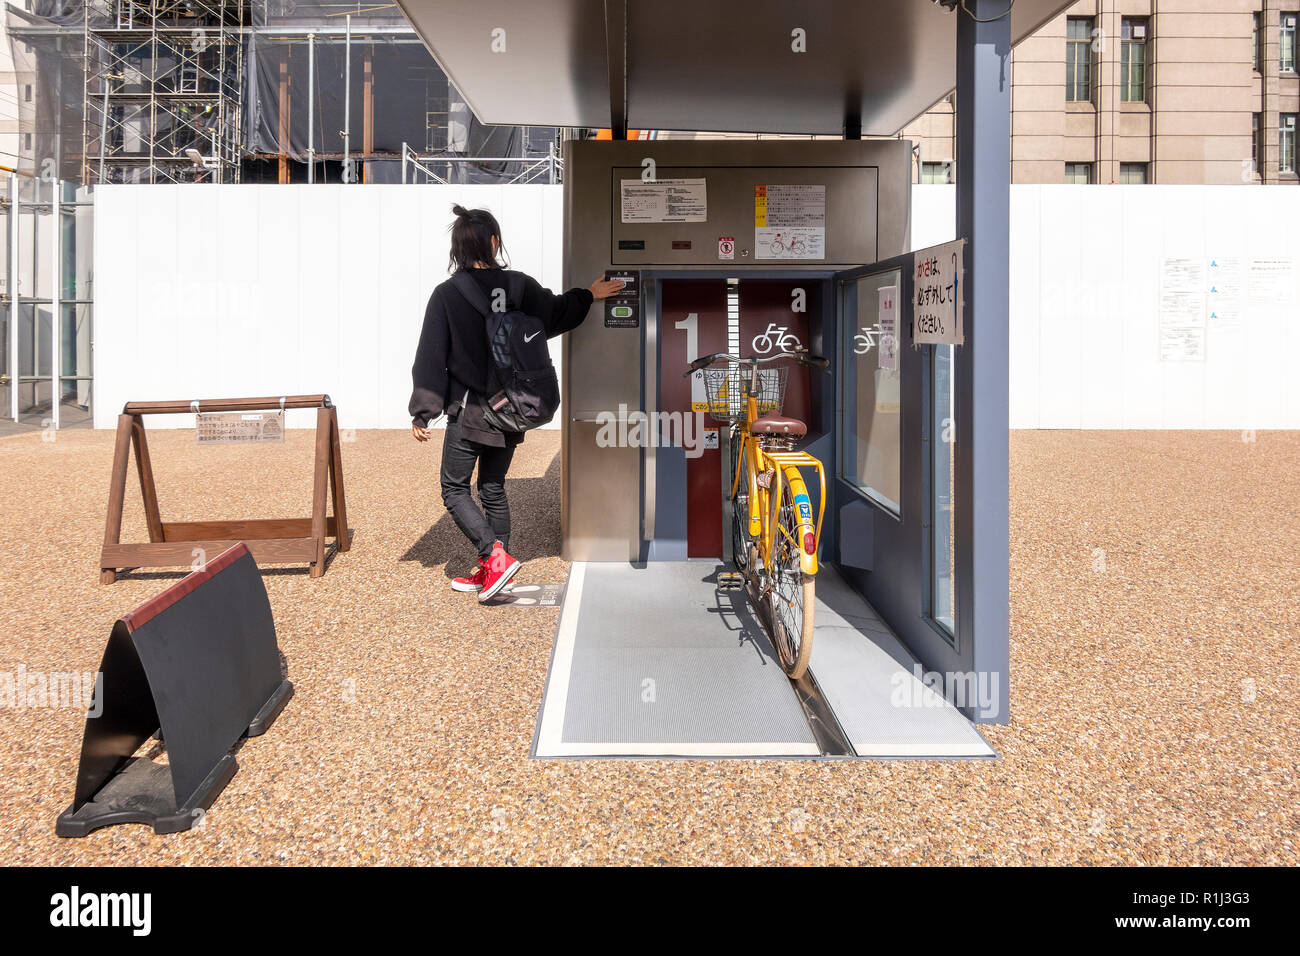 Girl parking her bike in a Giken Eco Cycle automated underground bicycle parking in front of Kyoto City Hall, Japan. Series of 3 images - Stock Image